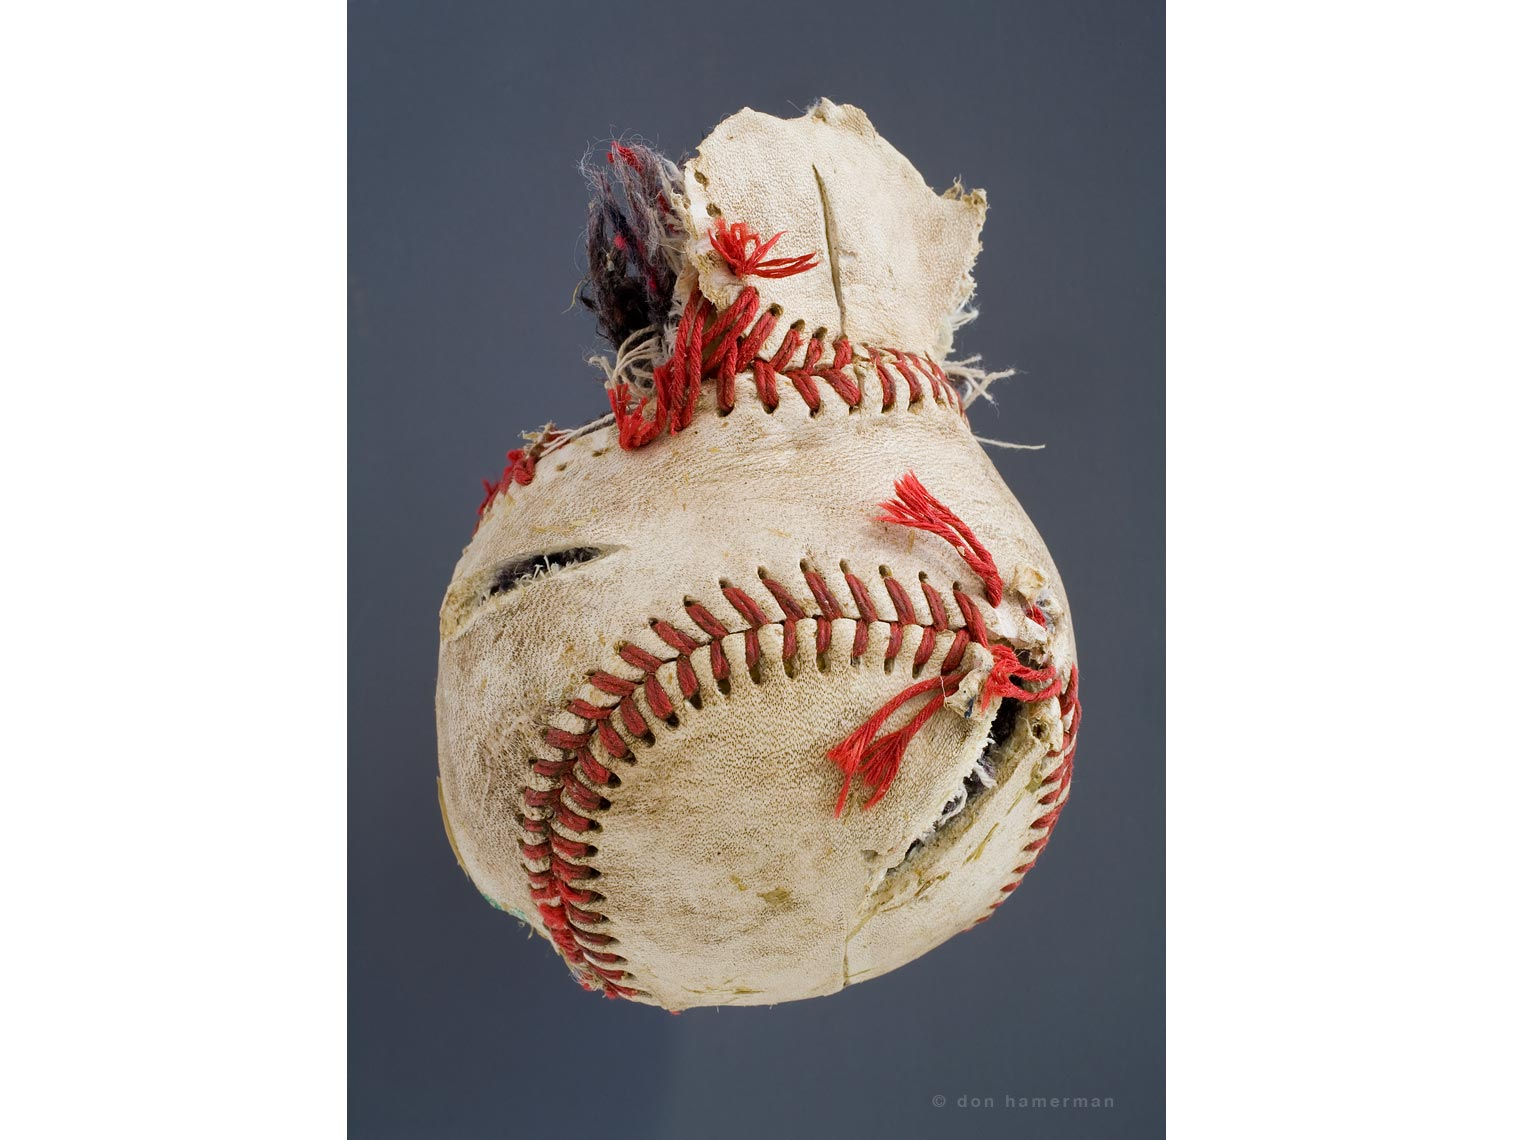 Don Hamerman Baseball Portrait - Fine Art Print ©DON HAMERMAN